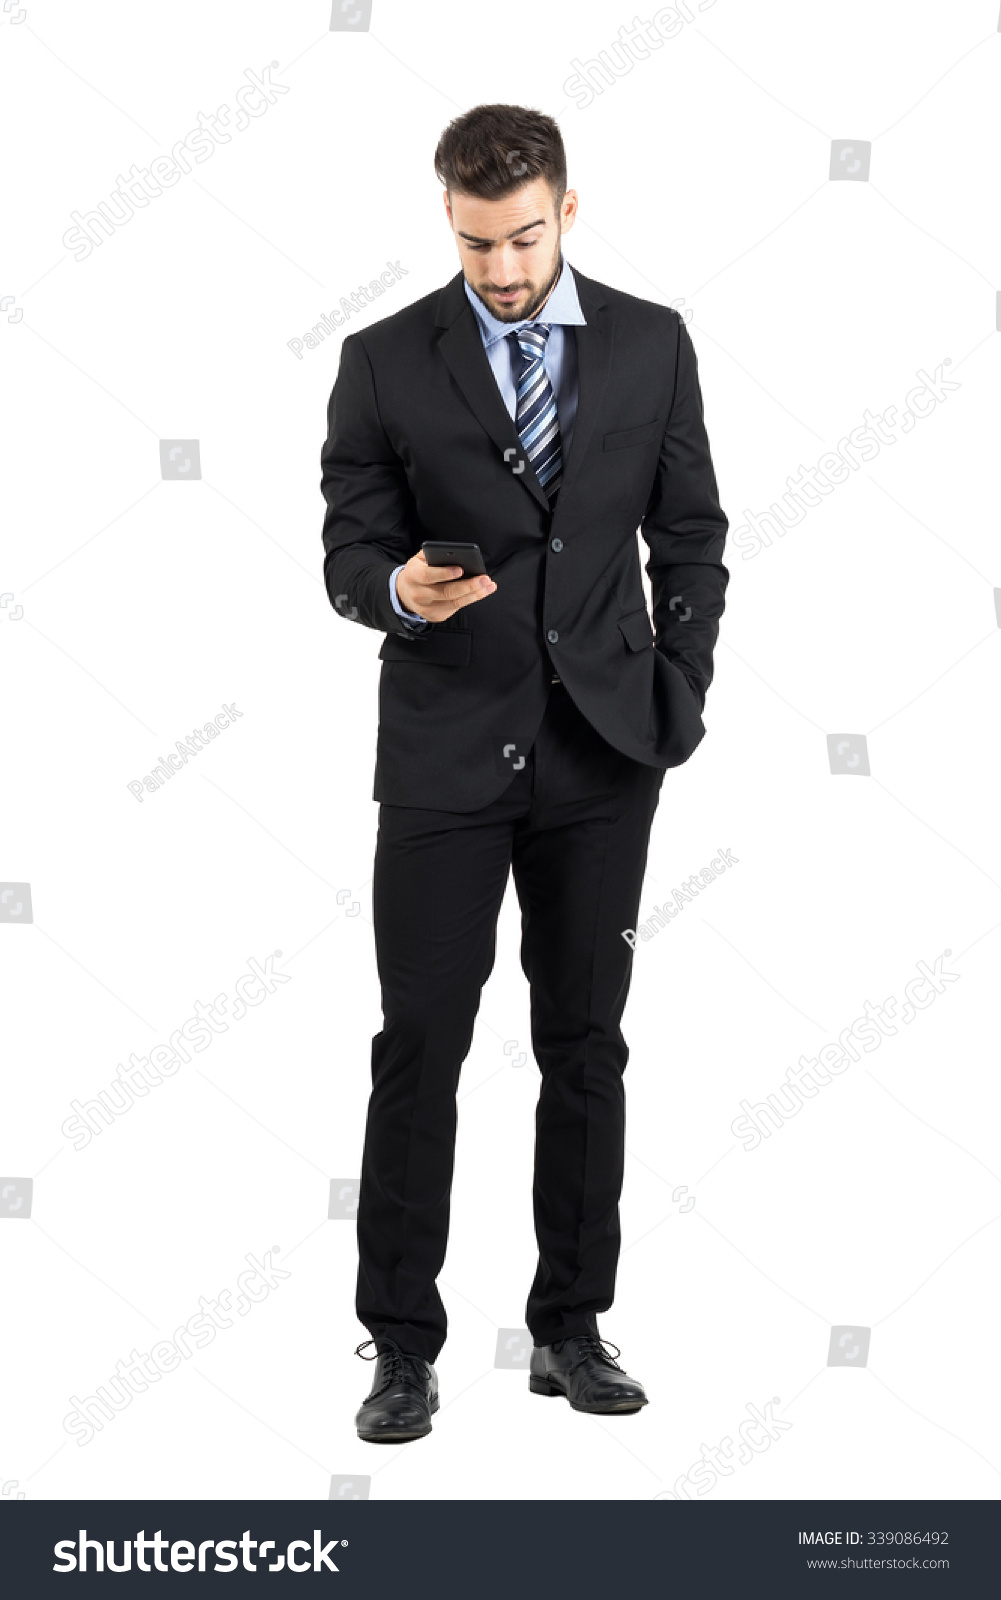 4e6be6a4c2 Young business man in suit reading message on his cellphone. Full body  length portrait isolated